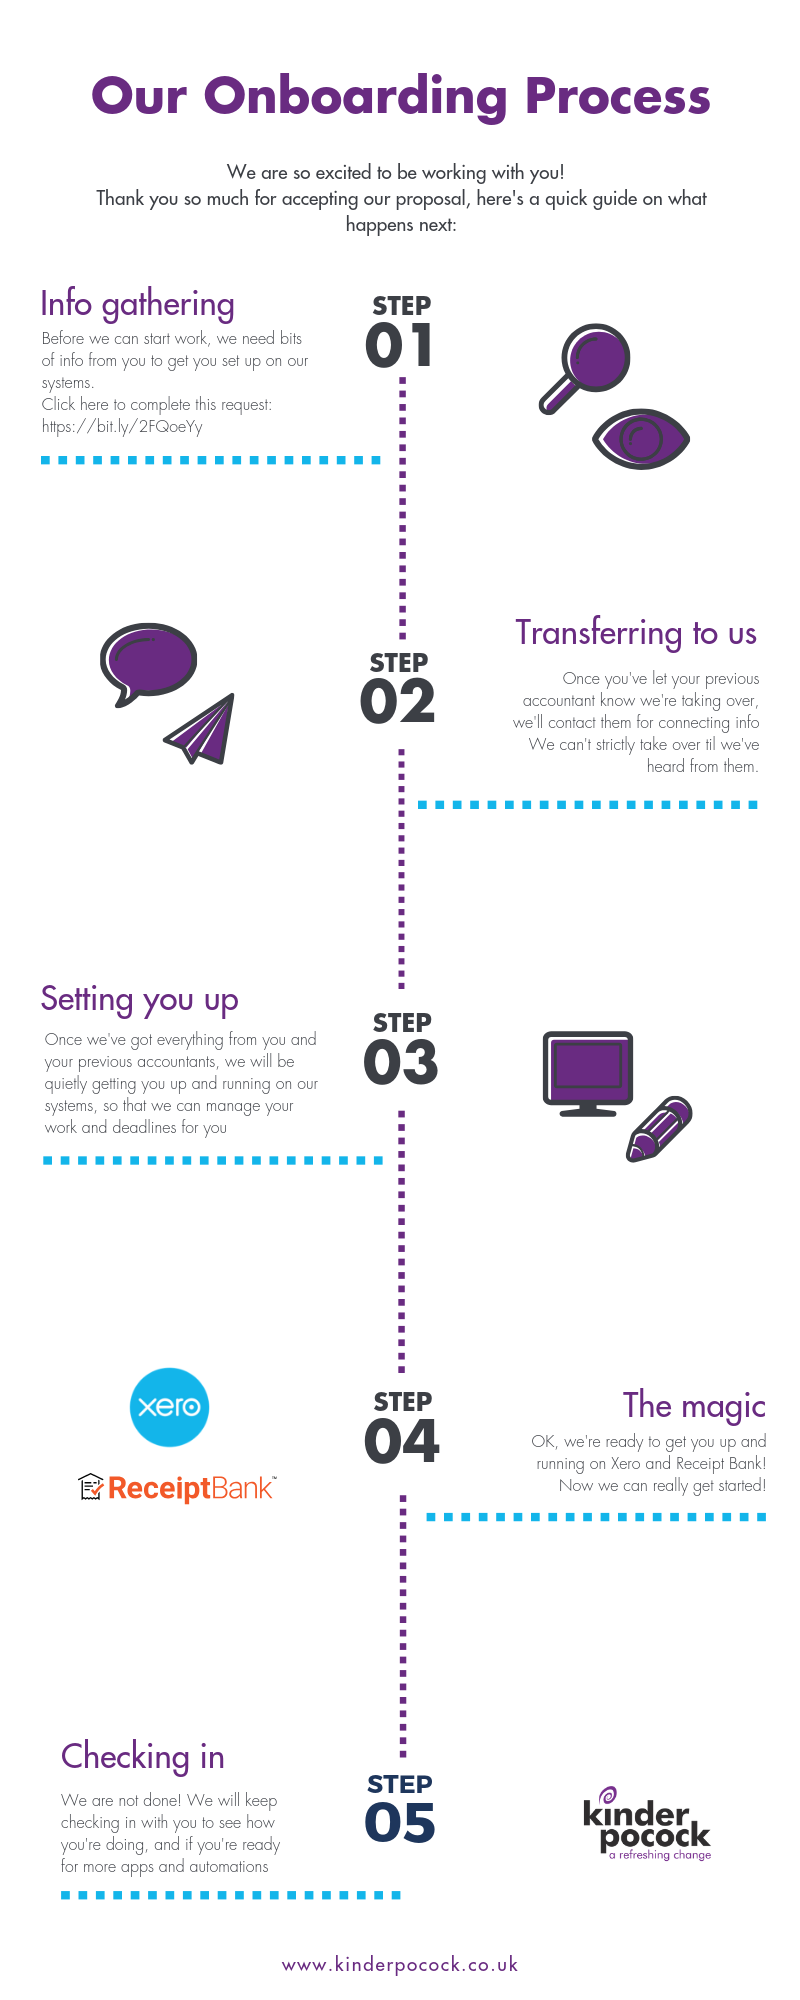 Our Onboarding Process